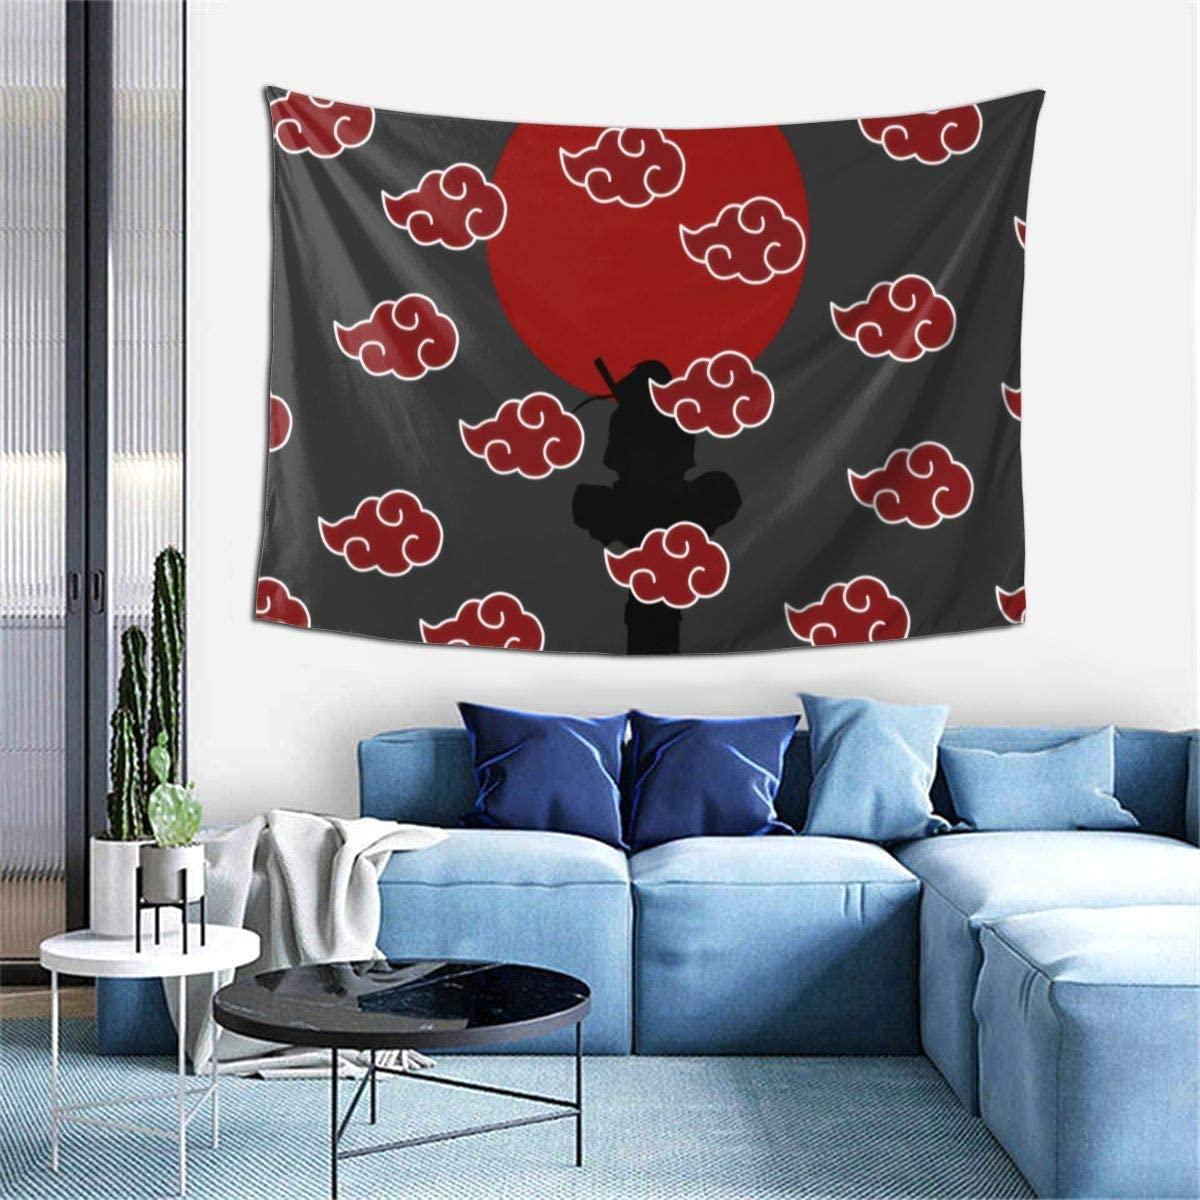 Wrenho Naruto Anime Tapestry Wall Art Hanging Decor Tapestry Background Home Decoration Room Decor Gift for Bedroom Living Room Wall Decoration 60x40 Inch